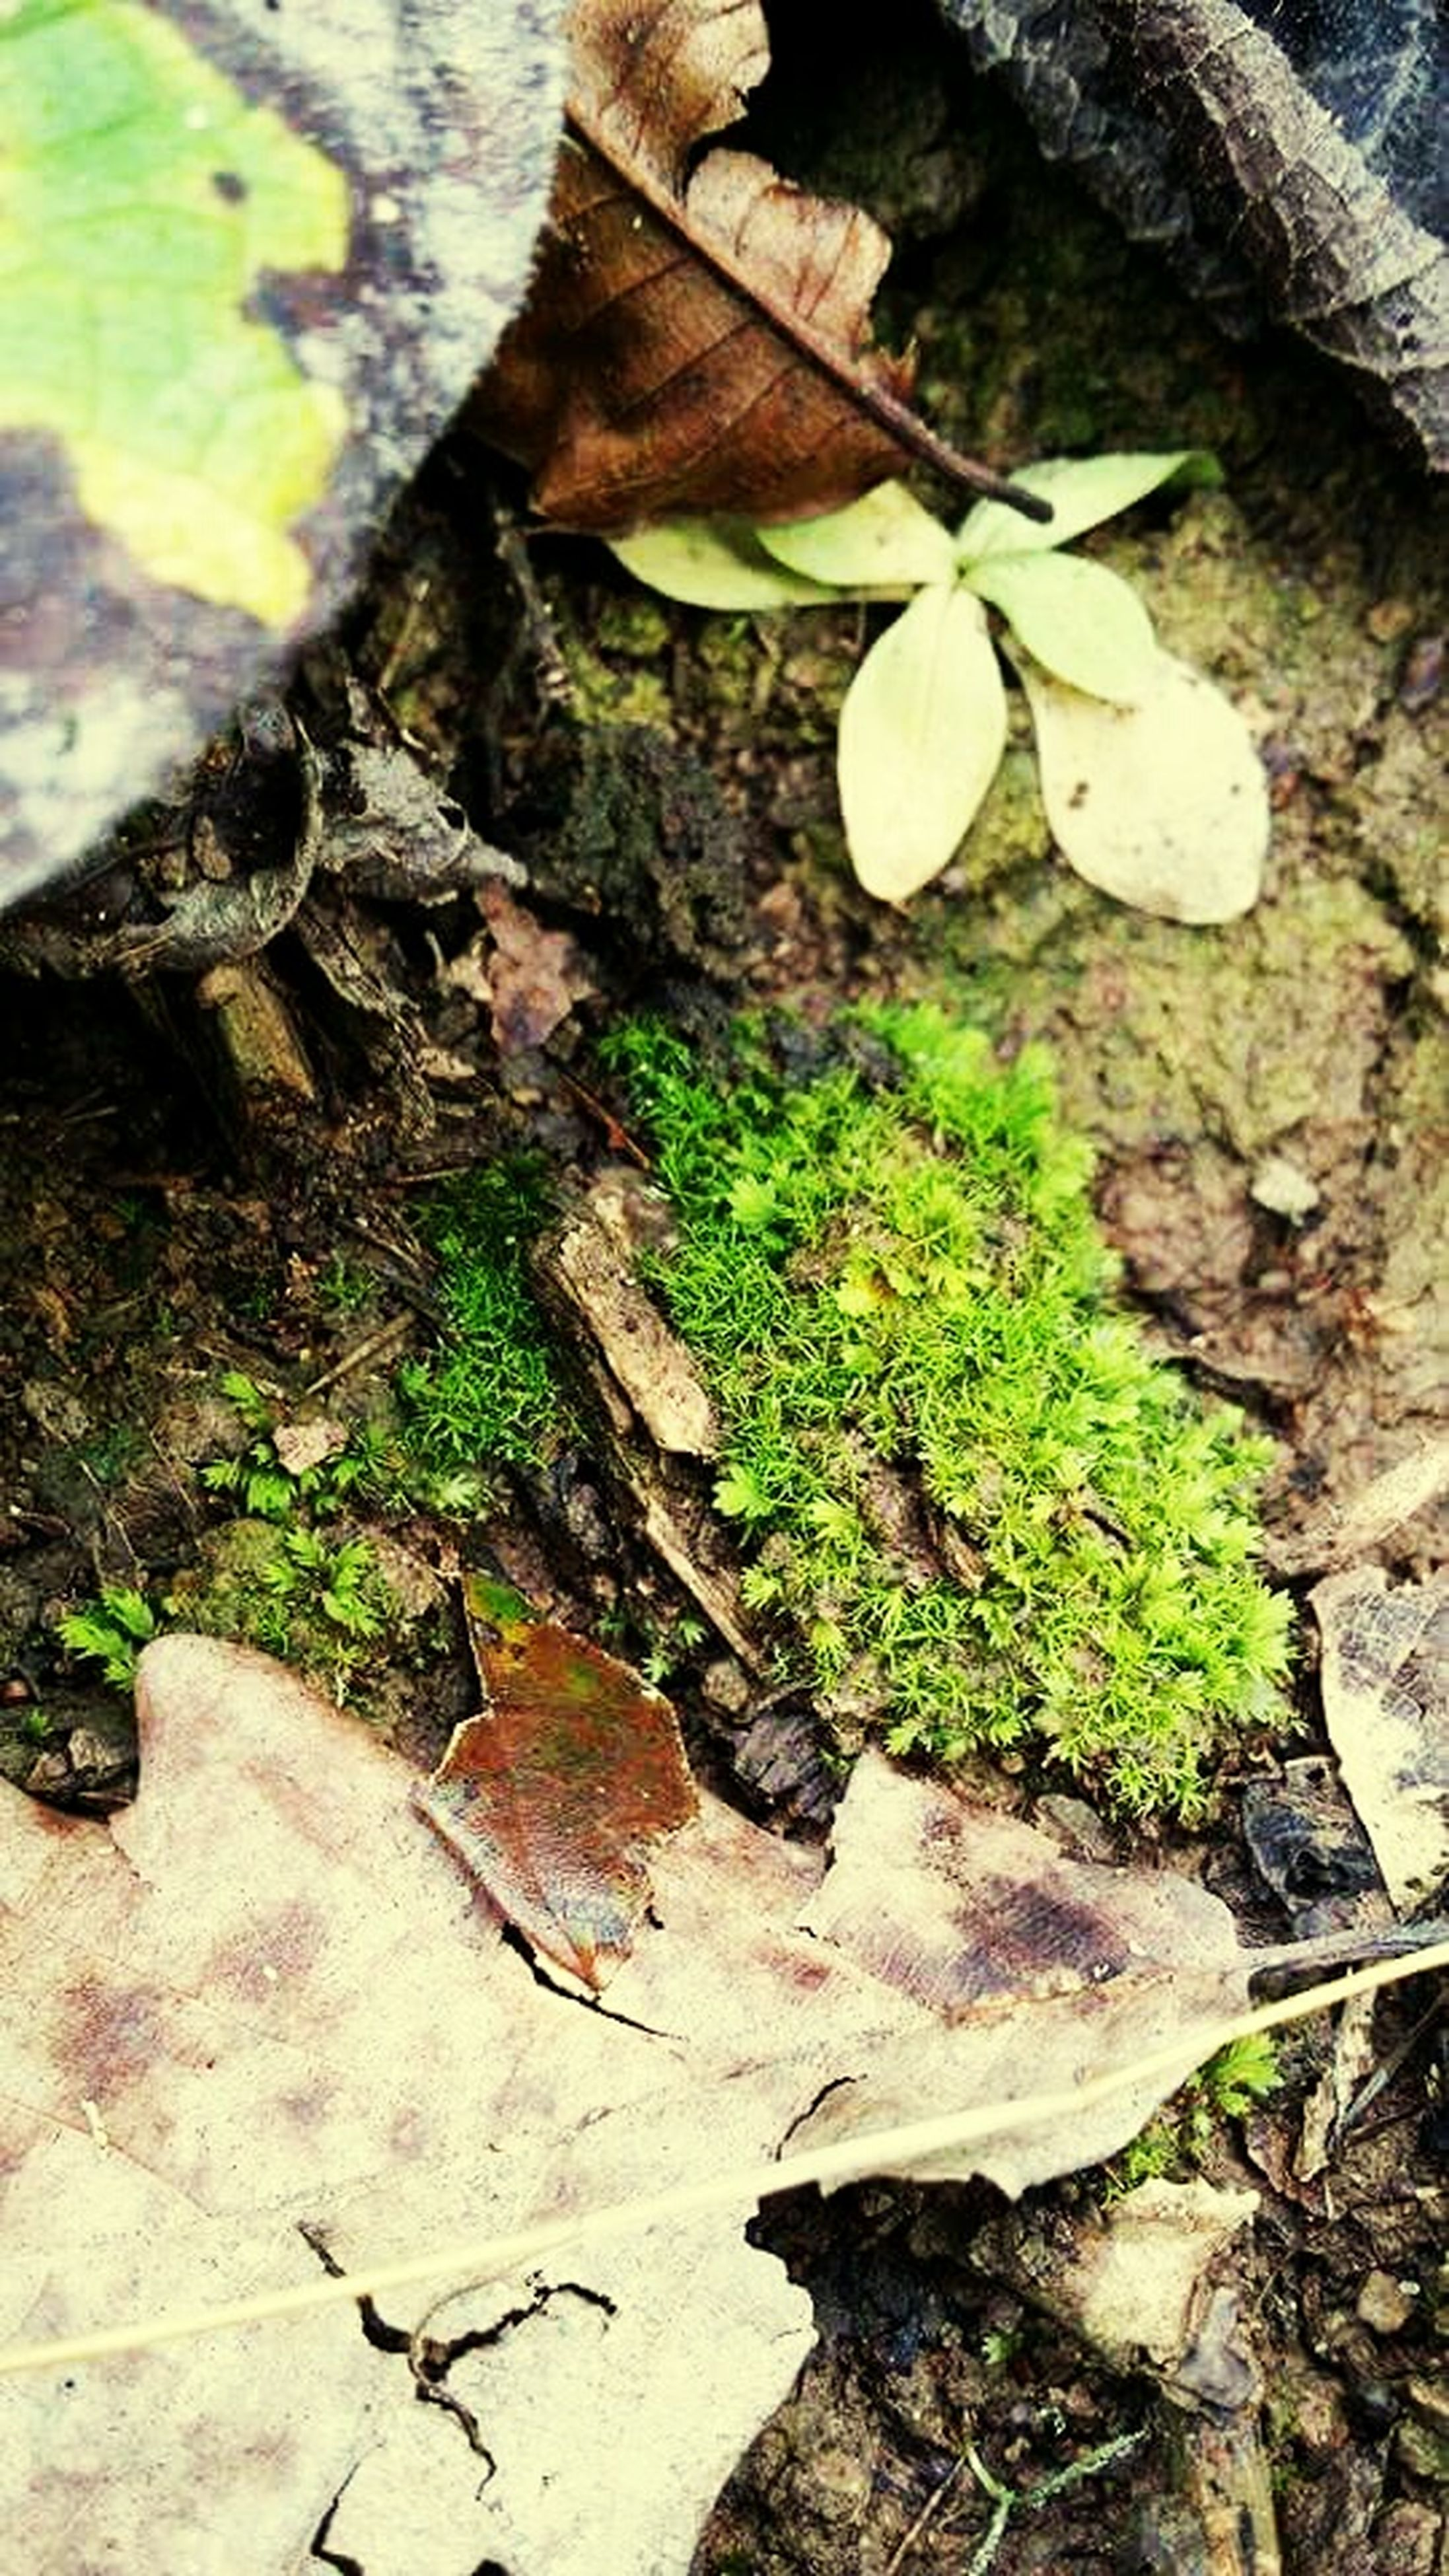 growth, leaf, high angle view, plant, close-up, nature, wood - material, growing, day, outdoors, field, green color, no people, ground, fragility, dirt, moss, freshness, tree trunk, fungus